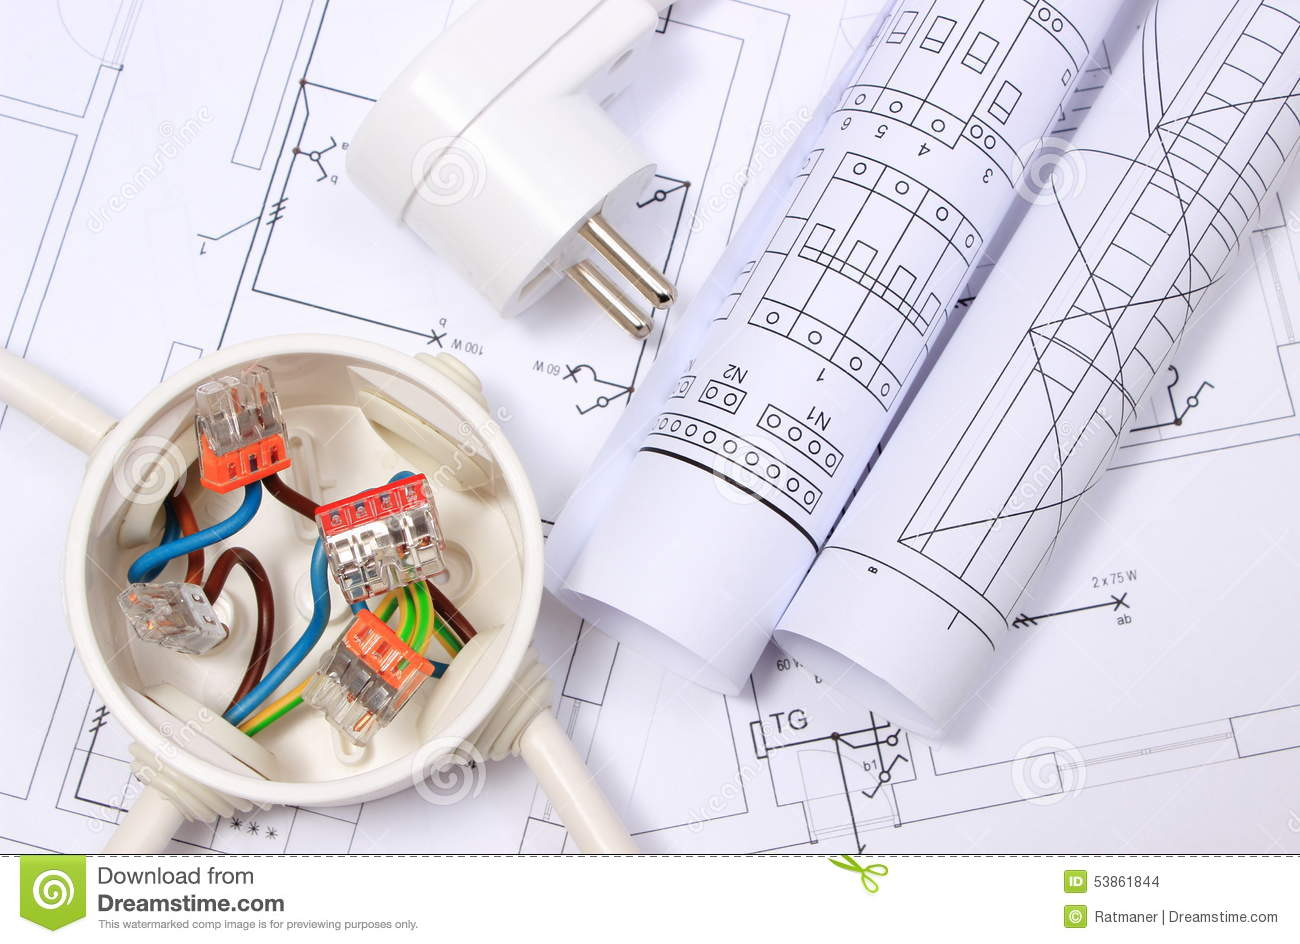 hight resolution of copper wire connections in electrical box electric plug and rolls of electrical diagrams on construction drawing of house energy concept